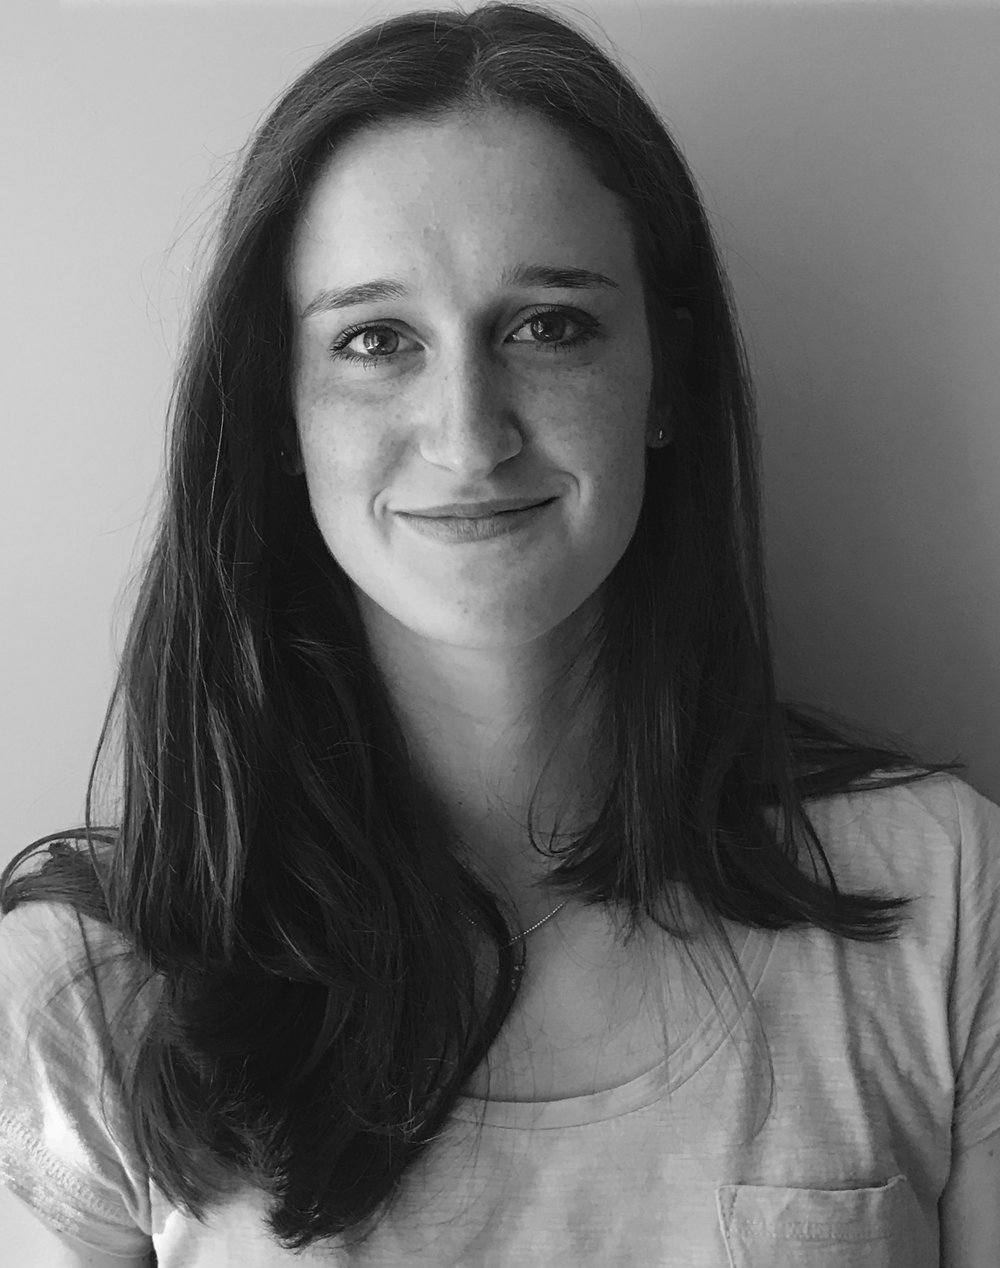 Chiara Soldi - Gallery Manager